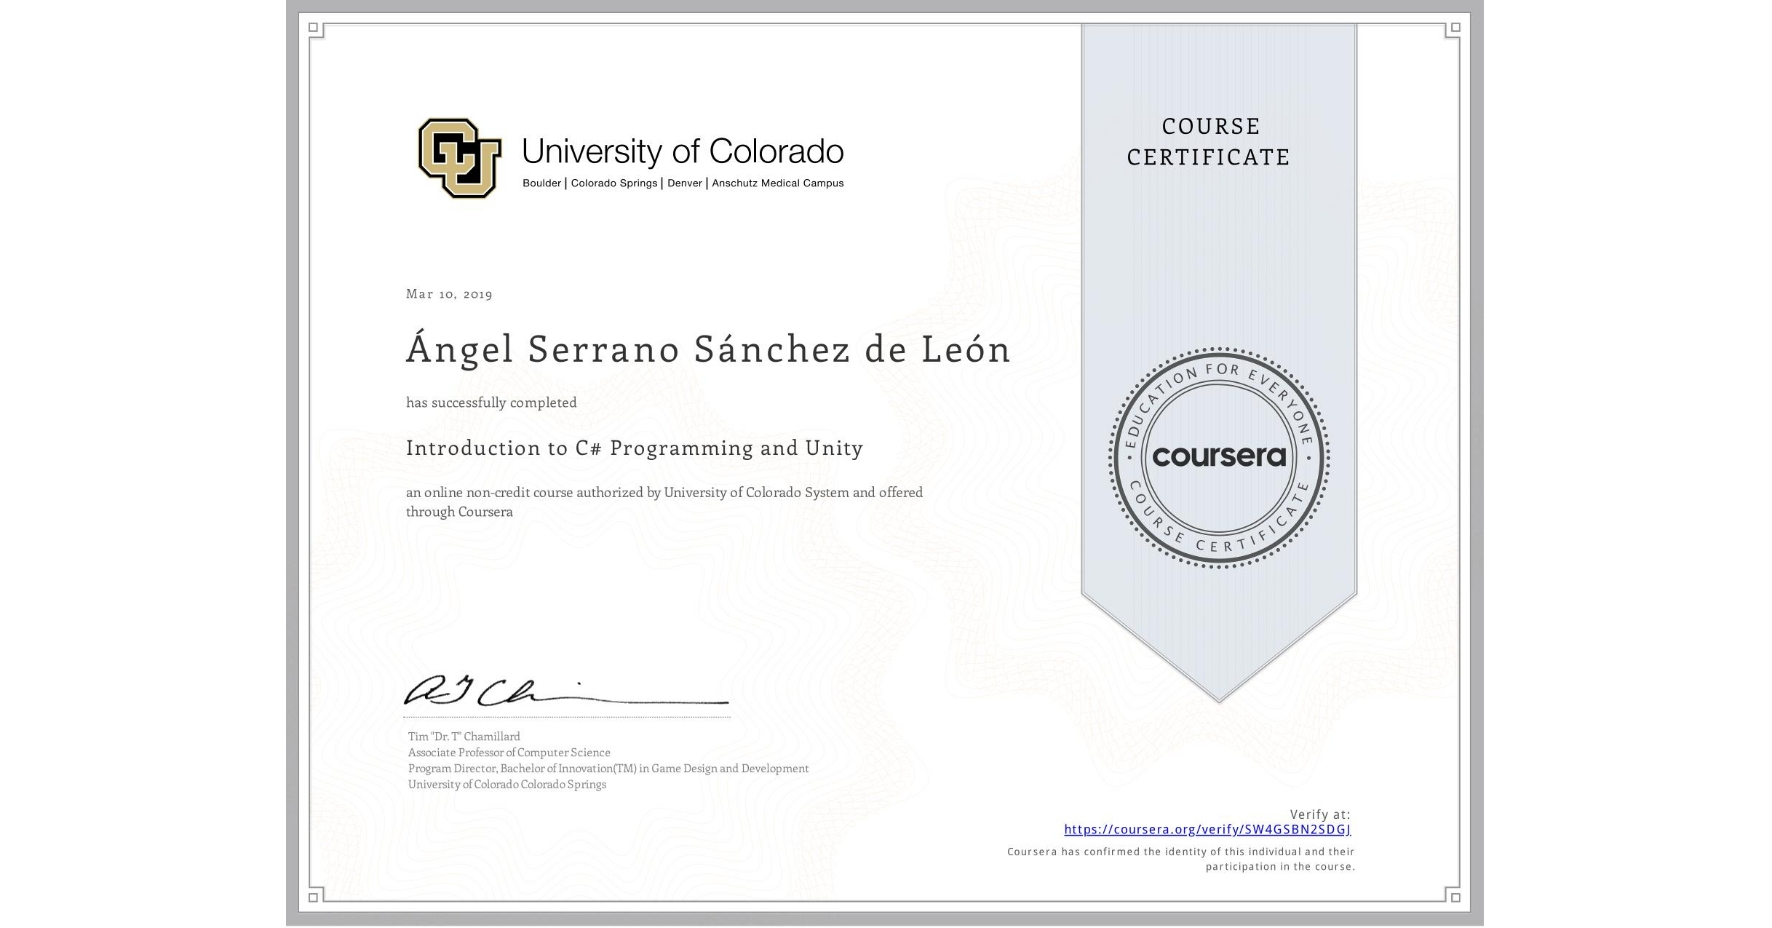 View certificate for Ángel Serrano Sánchez de León, Introduction to C# Programming and Unity, an online non-credit course authorized by University of Colorado System and offered through Coursera